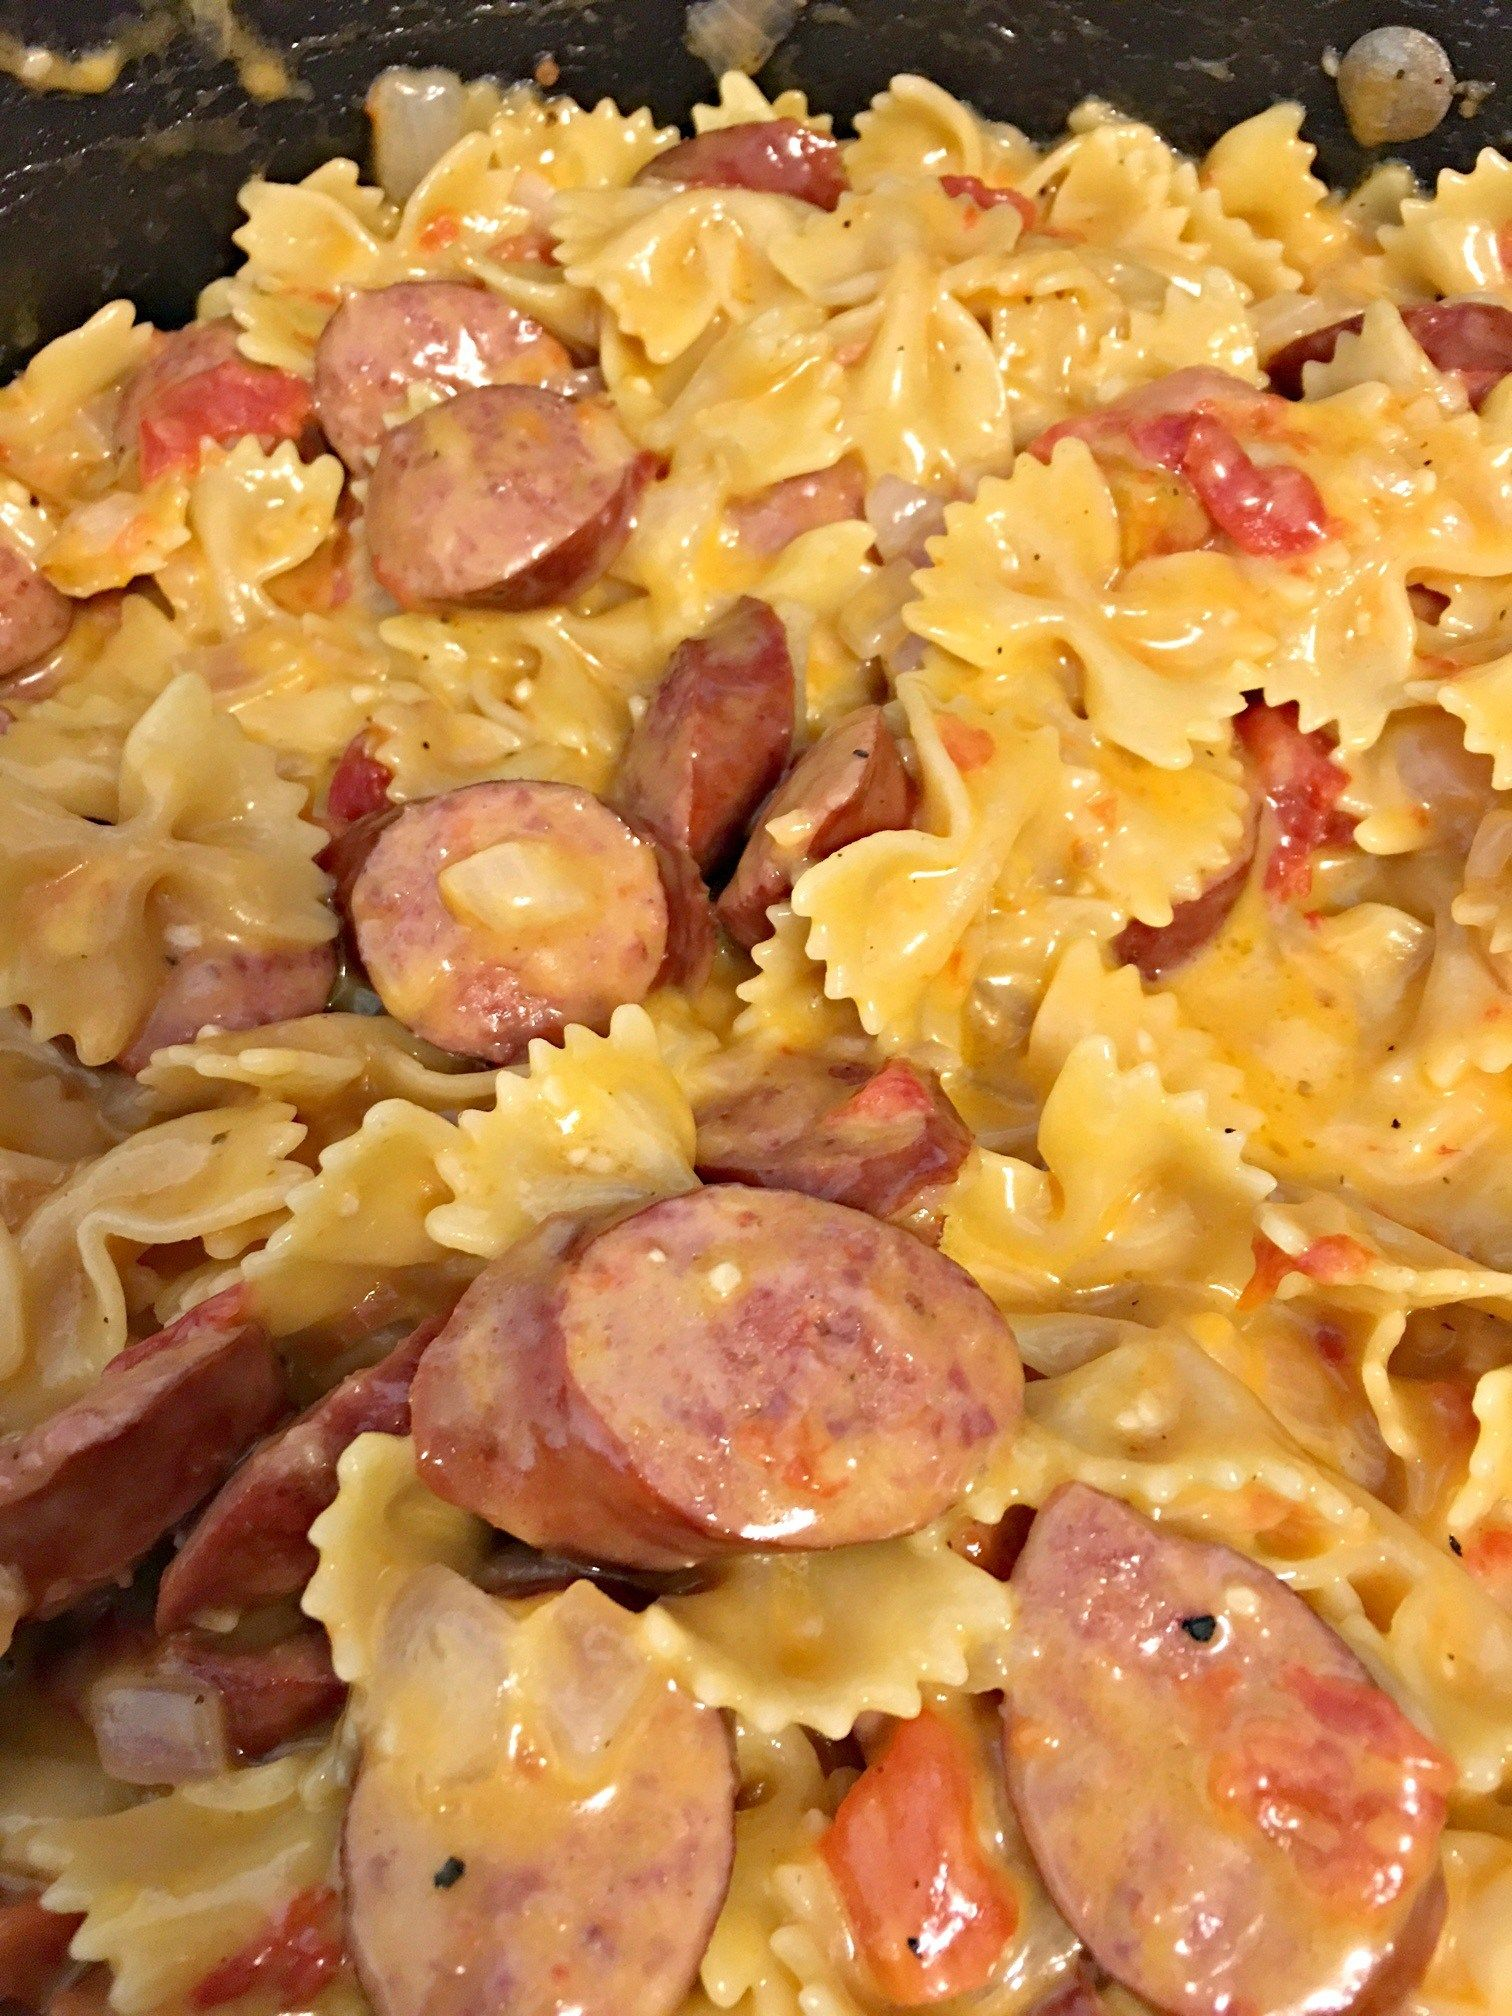 Easy Recipe: One Pot Smoked Sausage Pasta - Juggling Real Food and Real Life